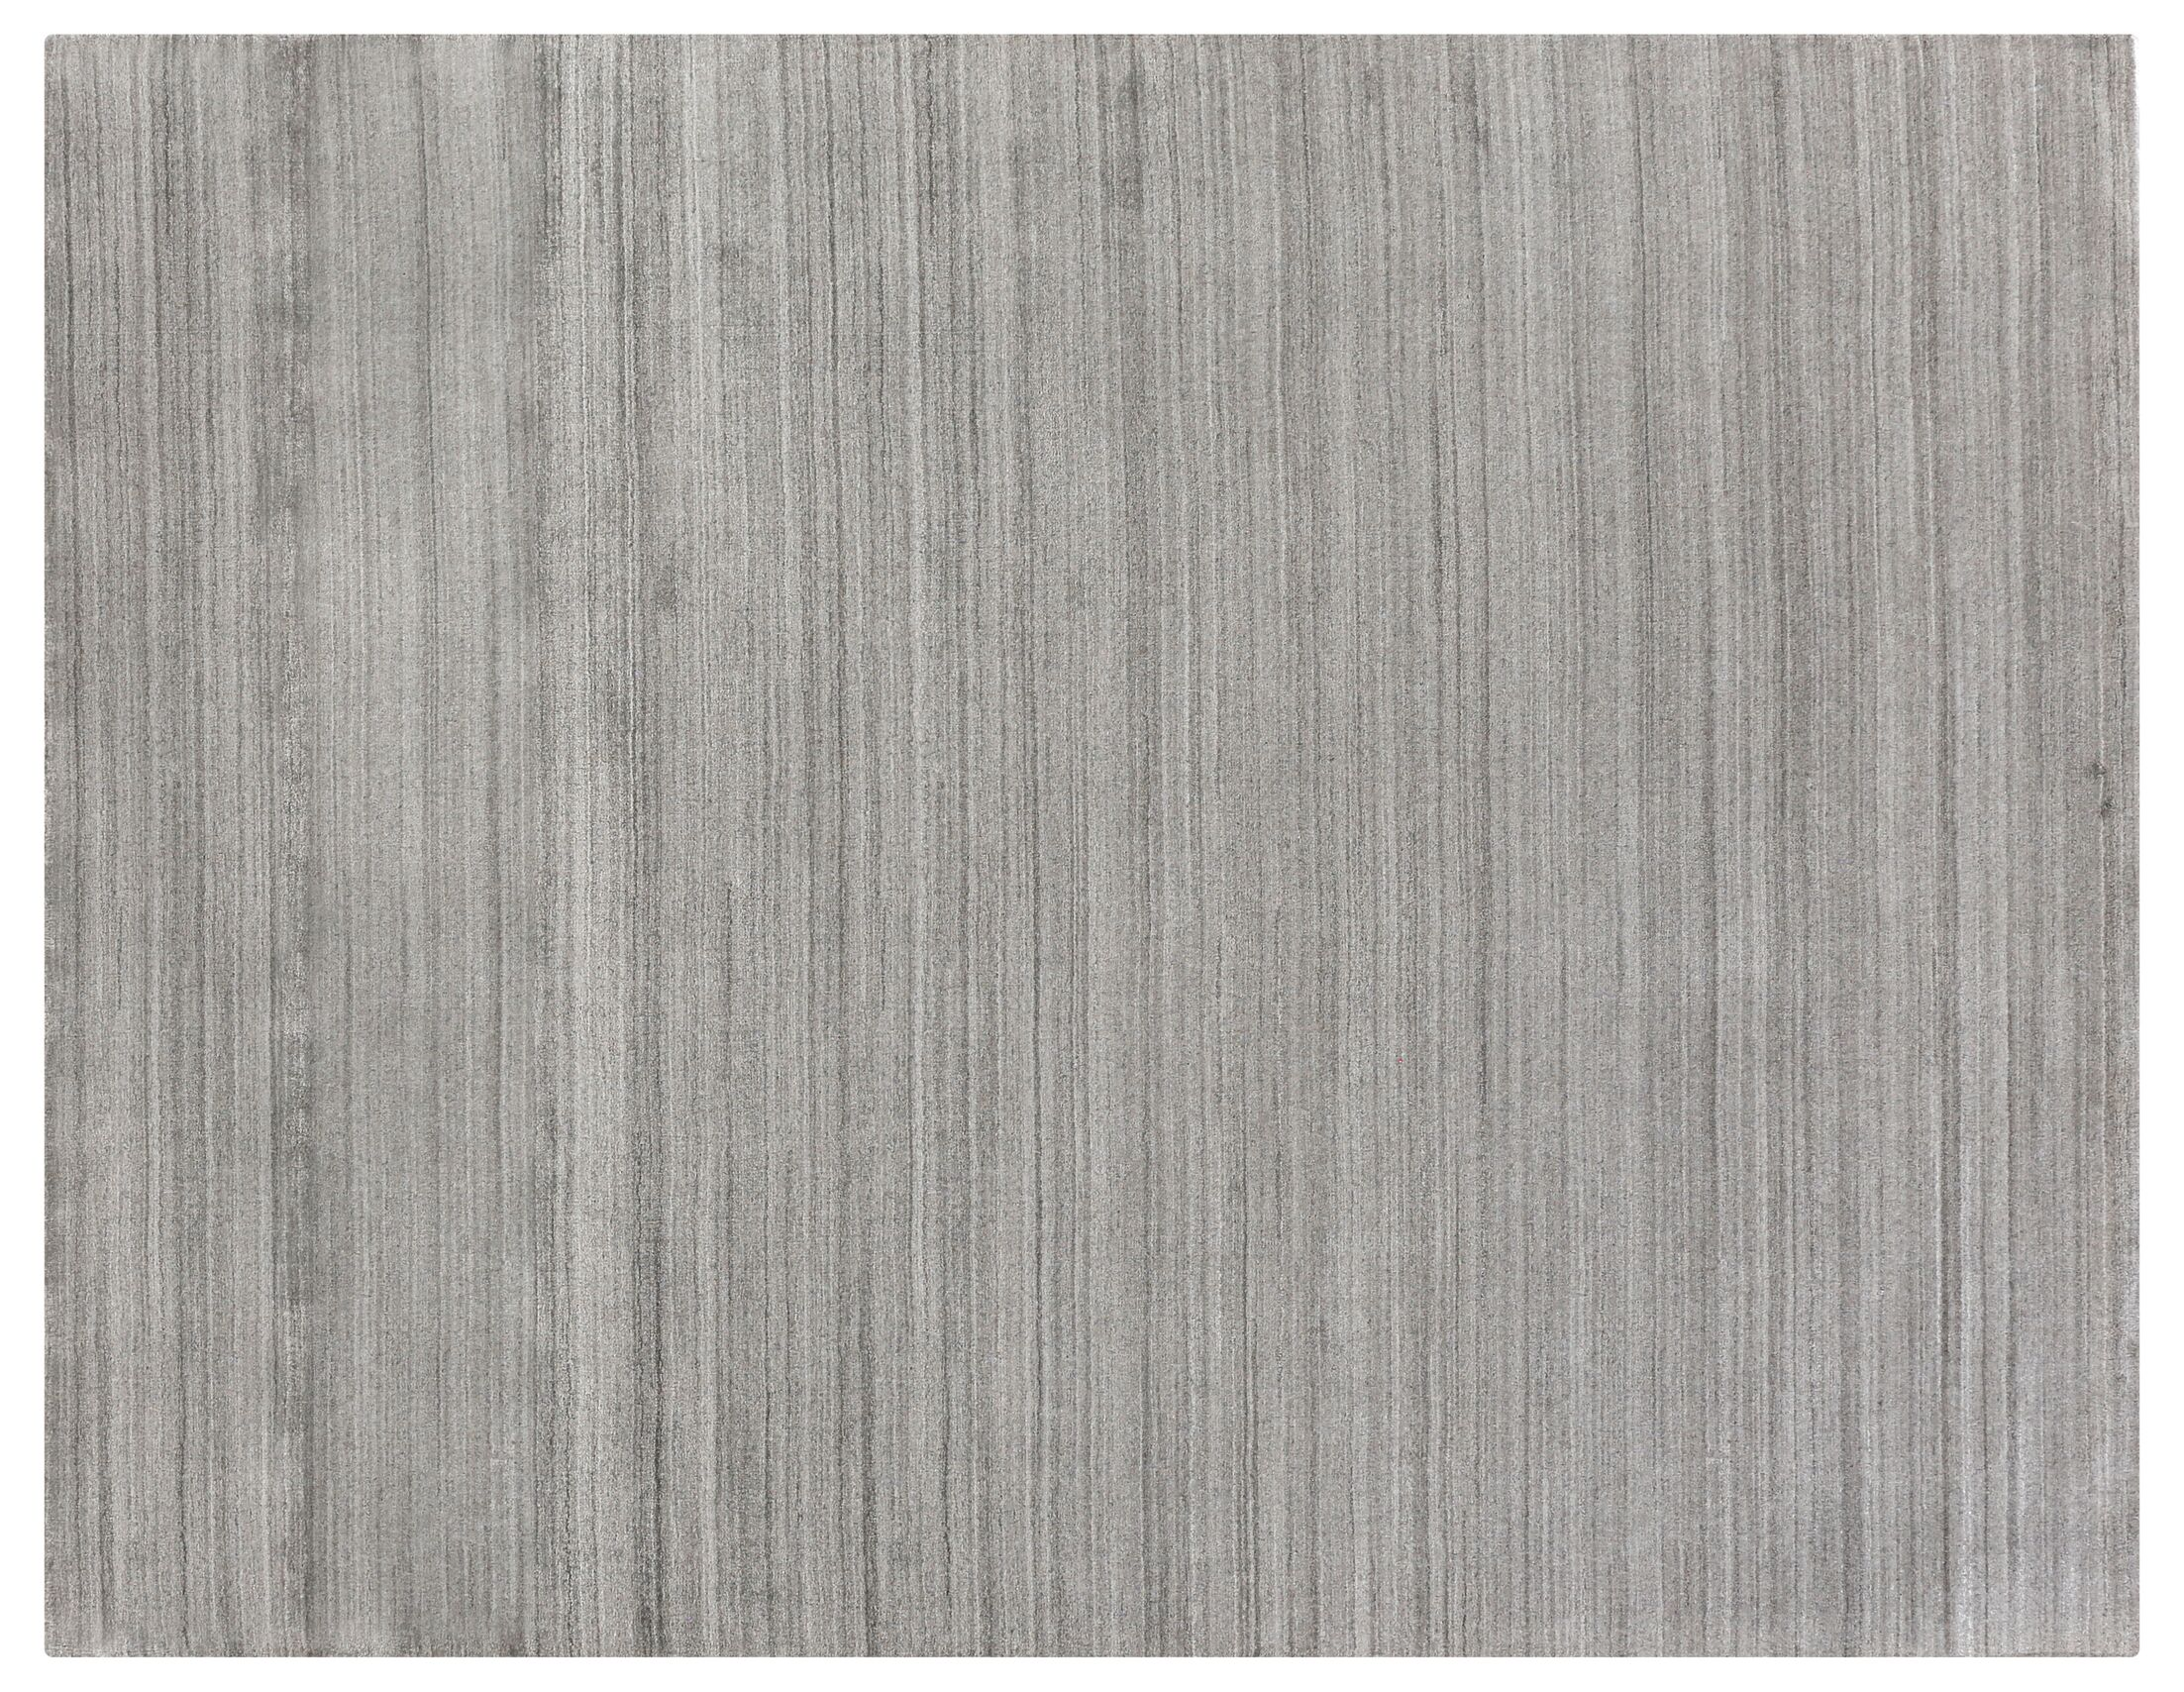 Sanctuary Hand Woven Silk Gray Area Rug Rug Size: Rectangle 8' x 10'